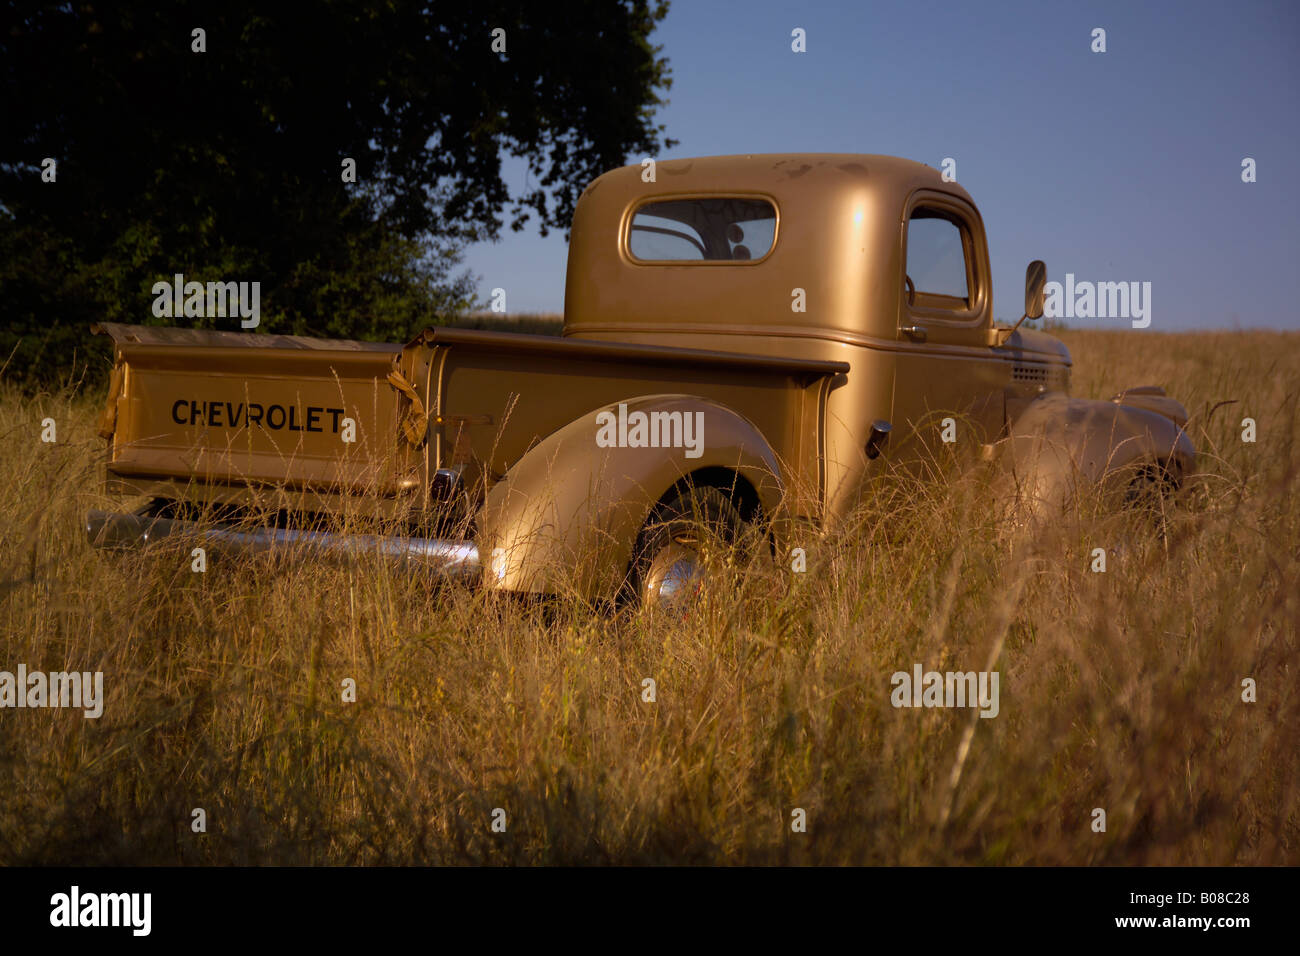 Old American vintage Chevrolet pick-up truck in a field with blue ...